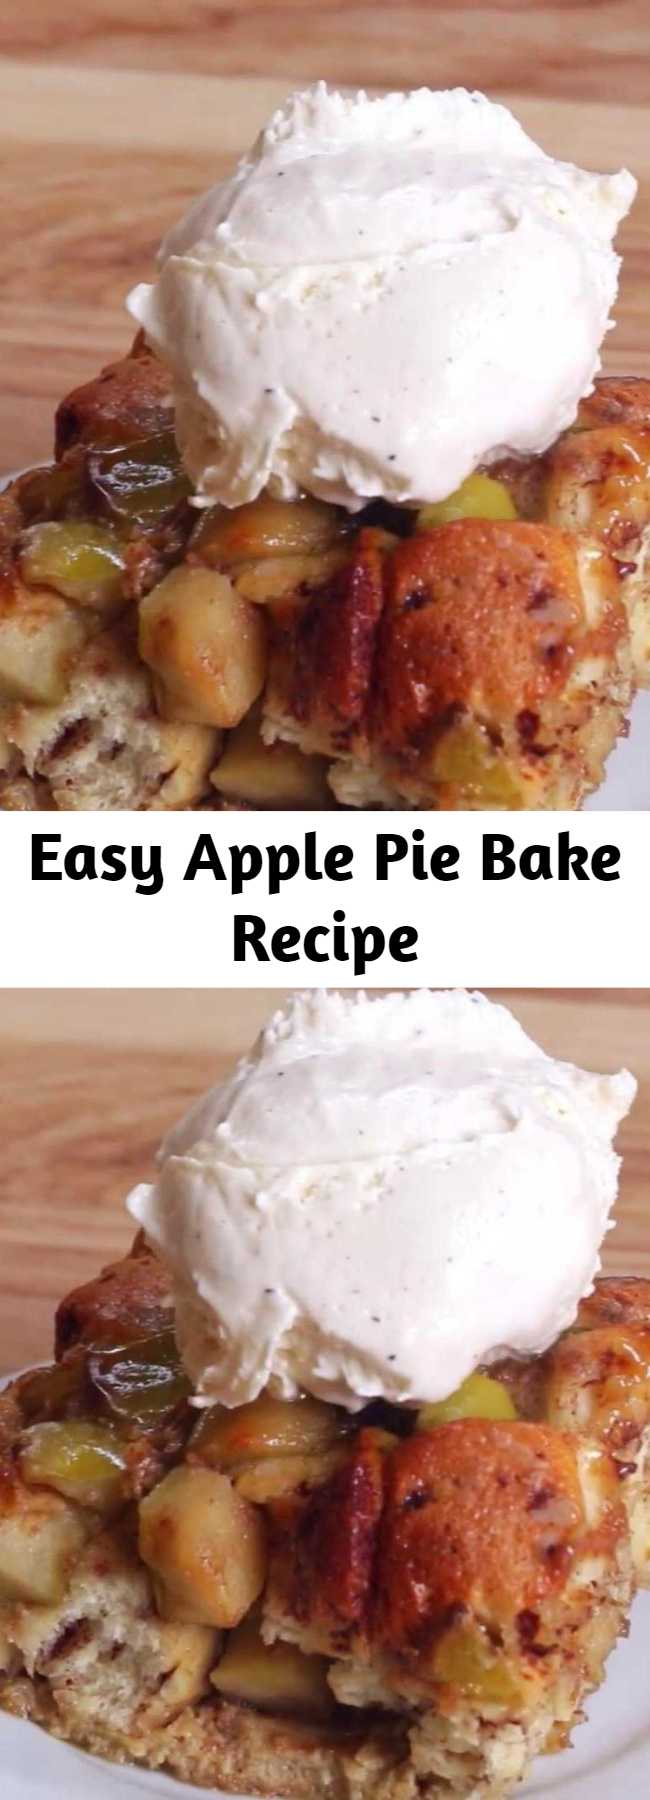 Easy Apple Pie Bake Recipe - This is absolutely the best apple pie bake you'll ever make! It has a flaky, buttery crust and a tender, lightly-spiced apple pie filling. Use a combination of apples for best flavor, and bake until the top is golden and the filling is bubbly!